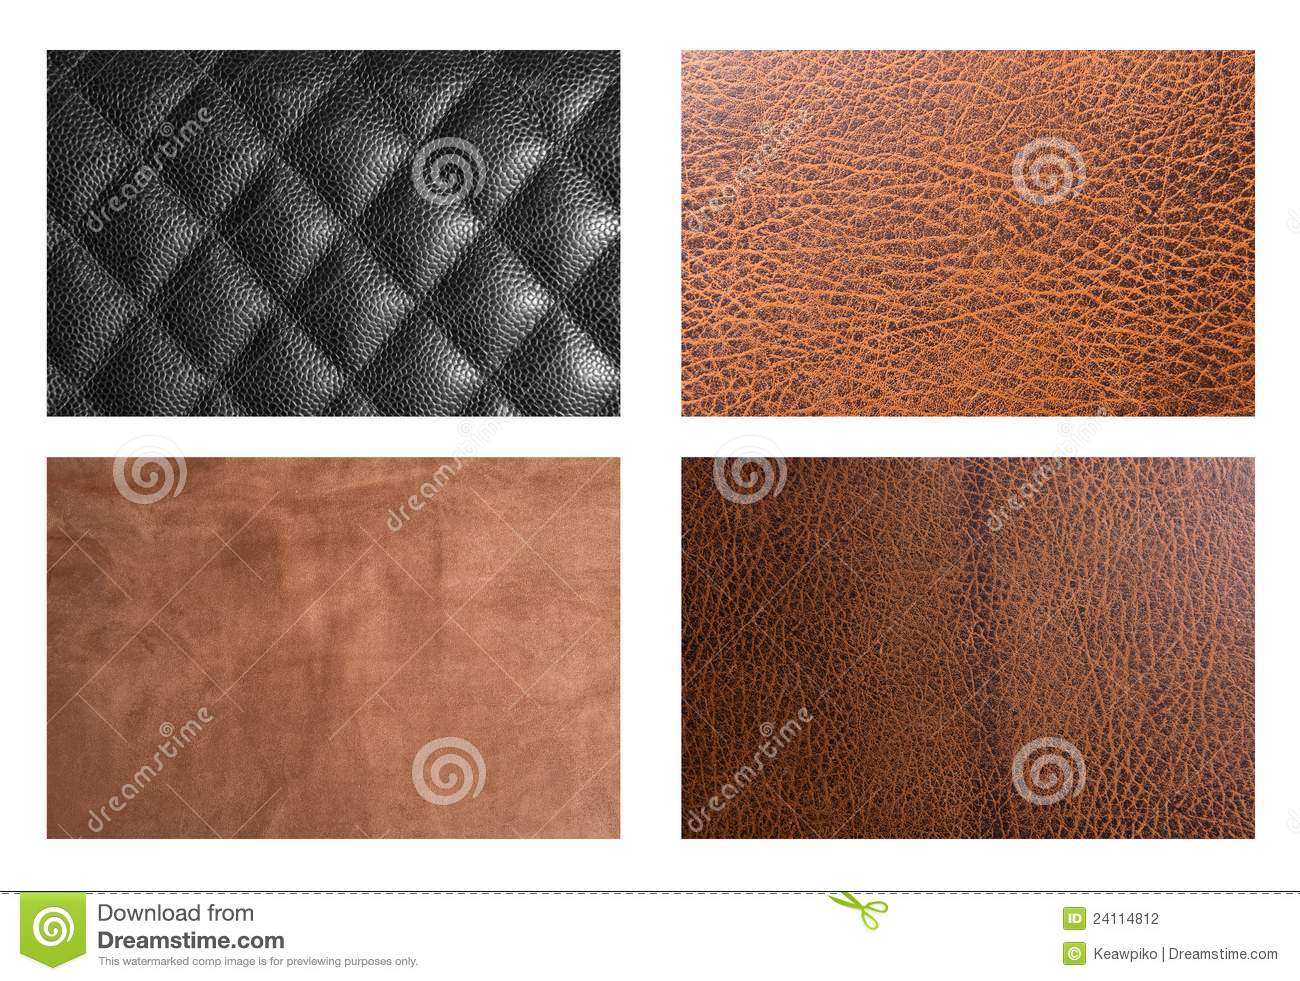 Four types of leather stock photo. Image of blank c2409648c8b6b